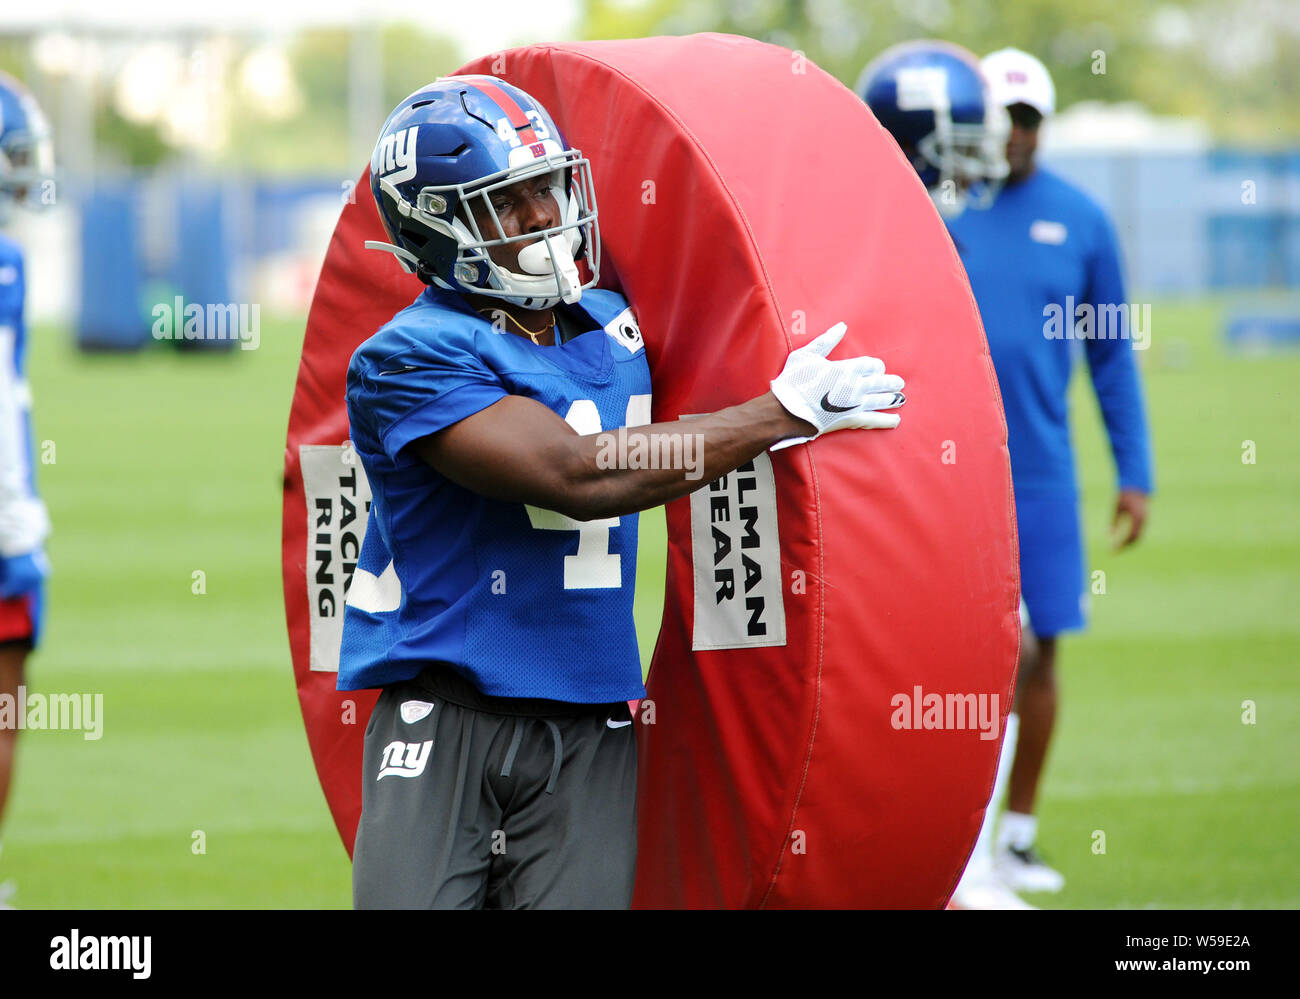 cheaper f3af0 abc62 New York Giants Defensive Back Stock Photos & New York ...